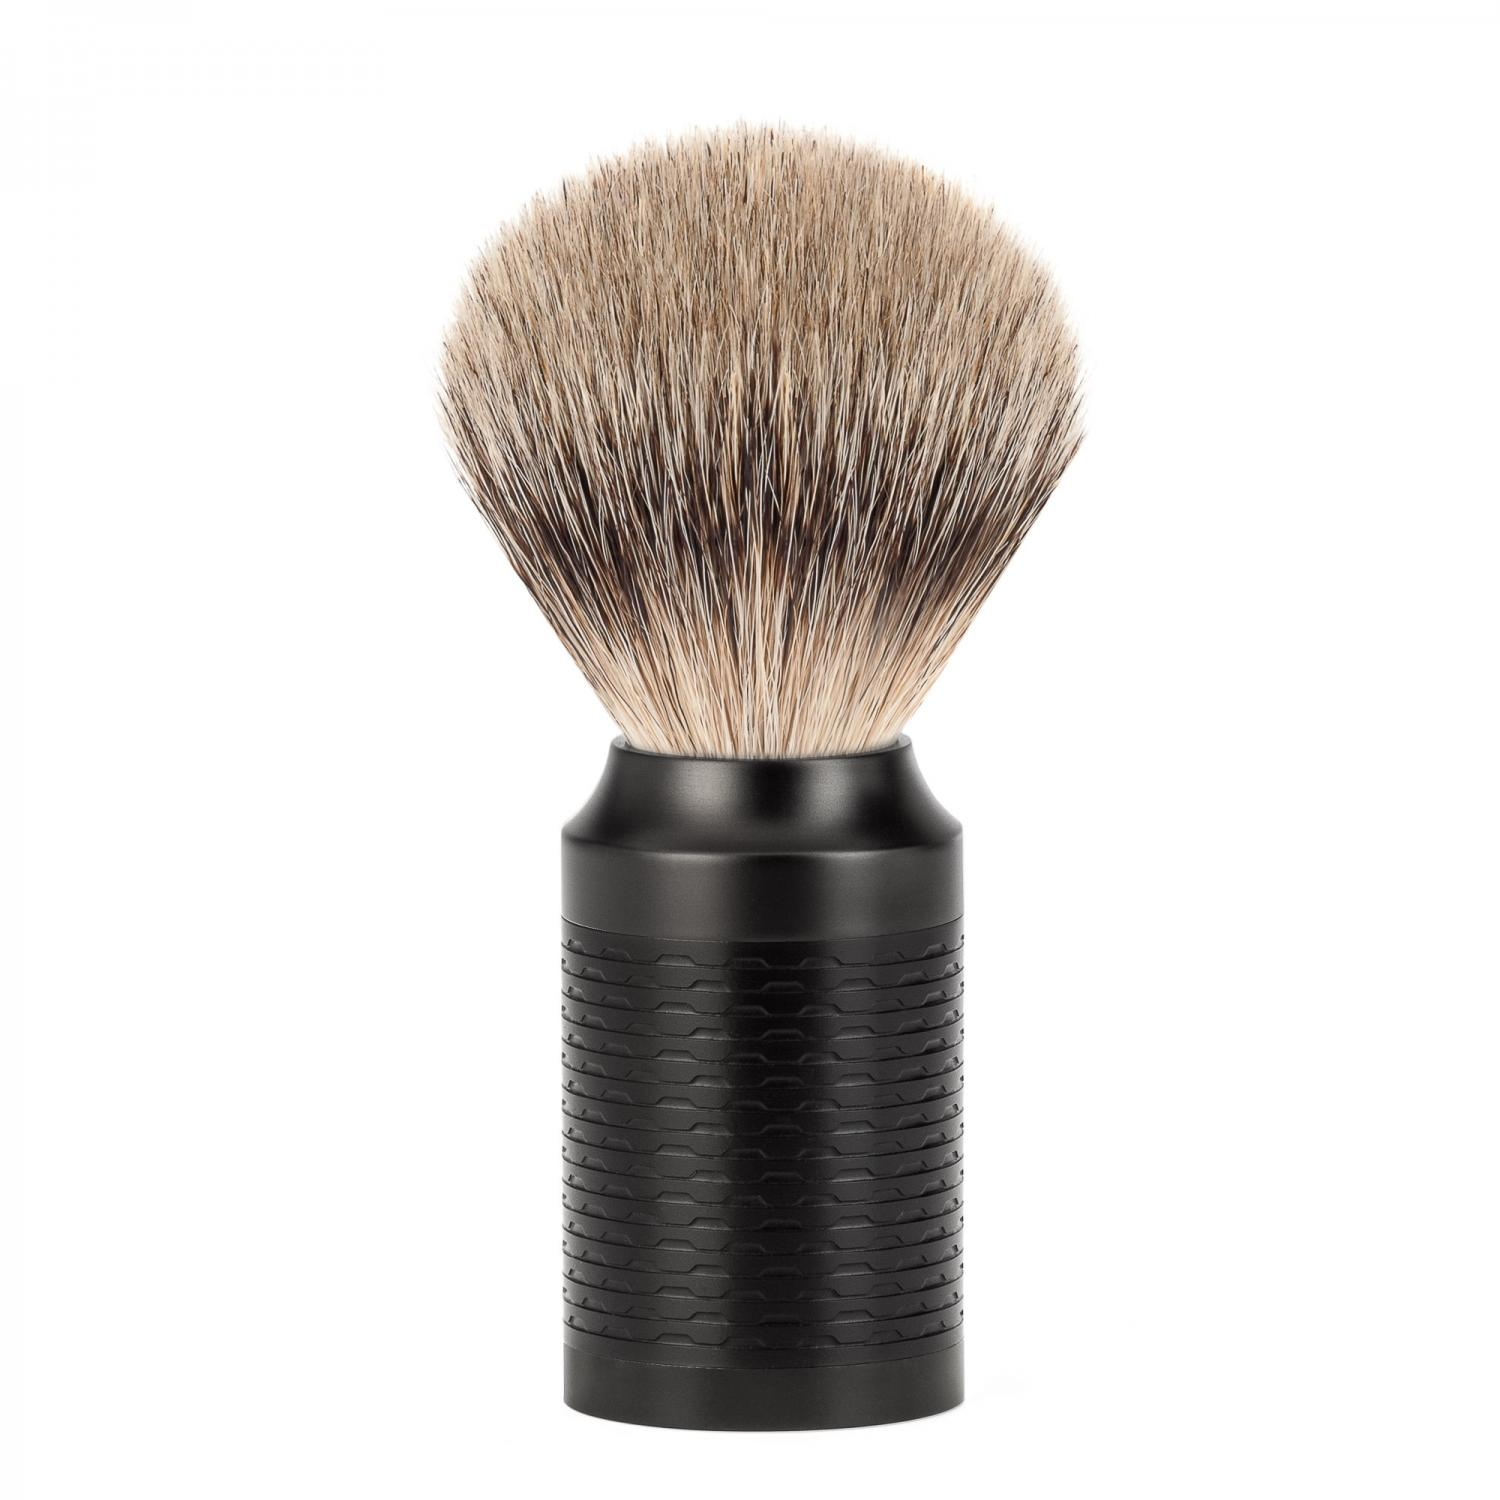 MUHLE ROCCA Black Steel Handle Silvertip Badger Shaving Brush